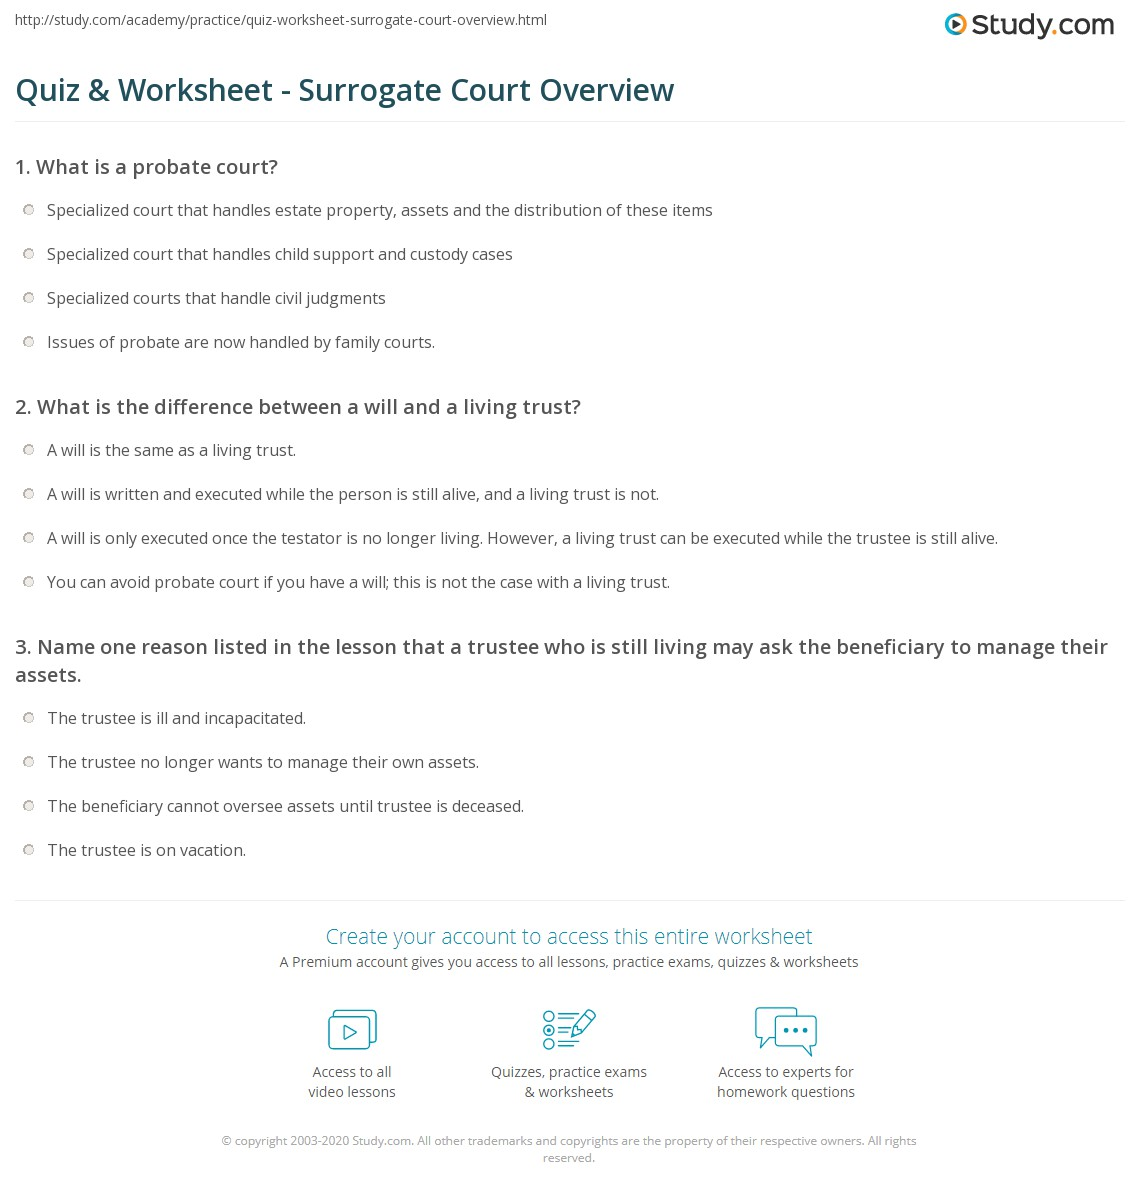 quiz & worksheet - surrogate court overview | study